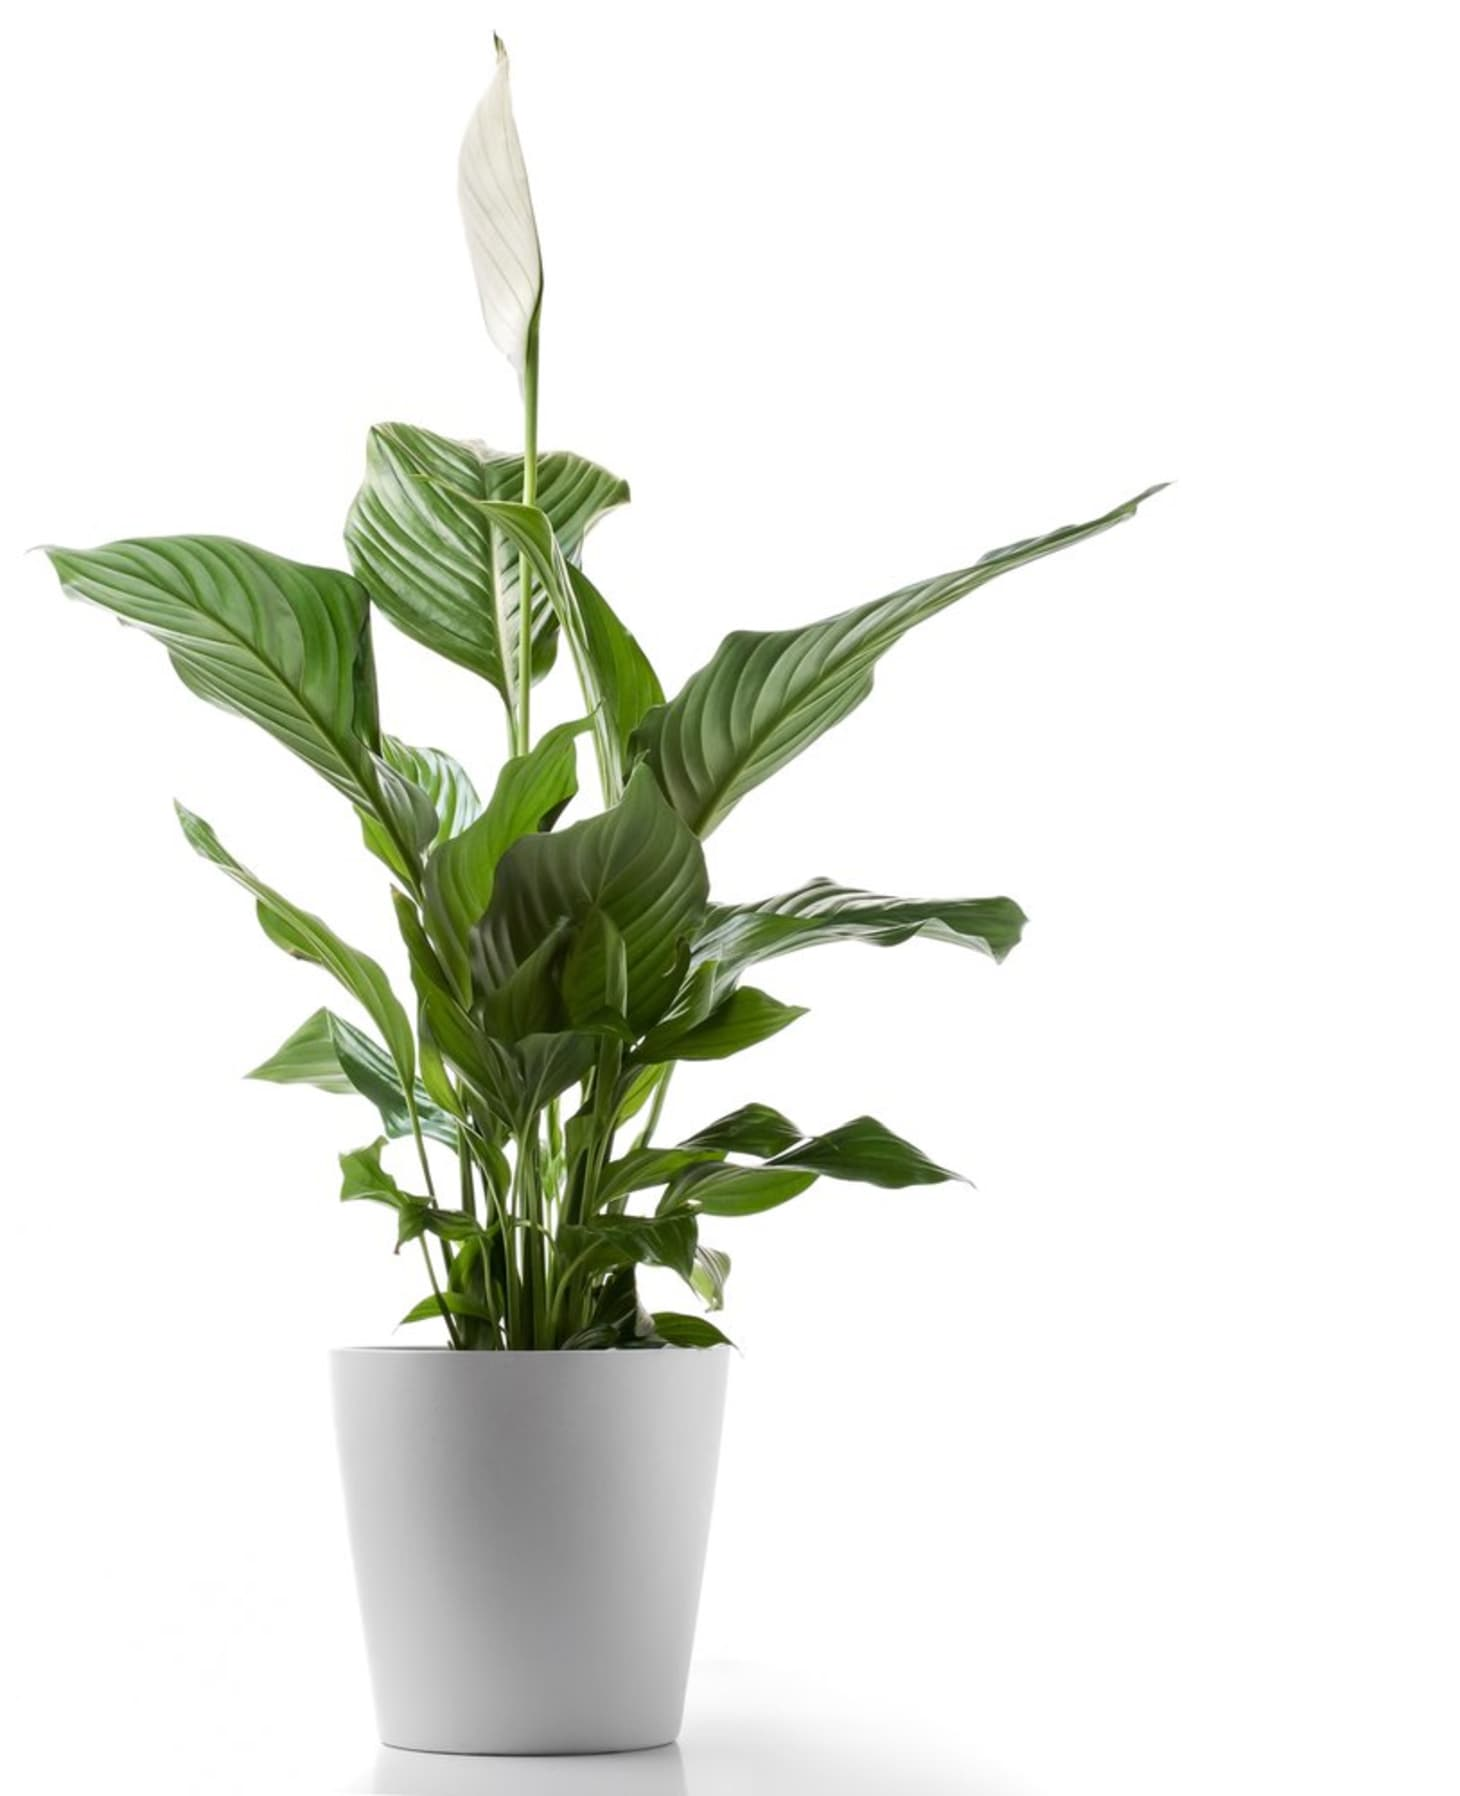 Best Low Light Plants For Bedroom: 5 Hard-to-Kill Houseplants For Apartments With Low Light